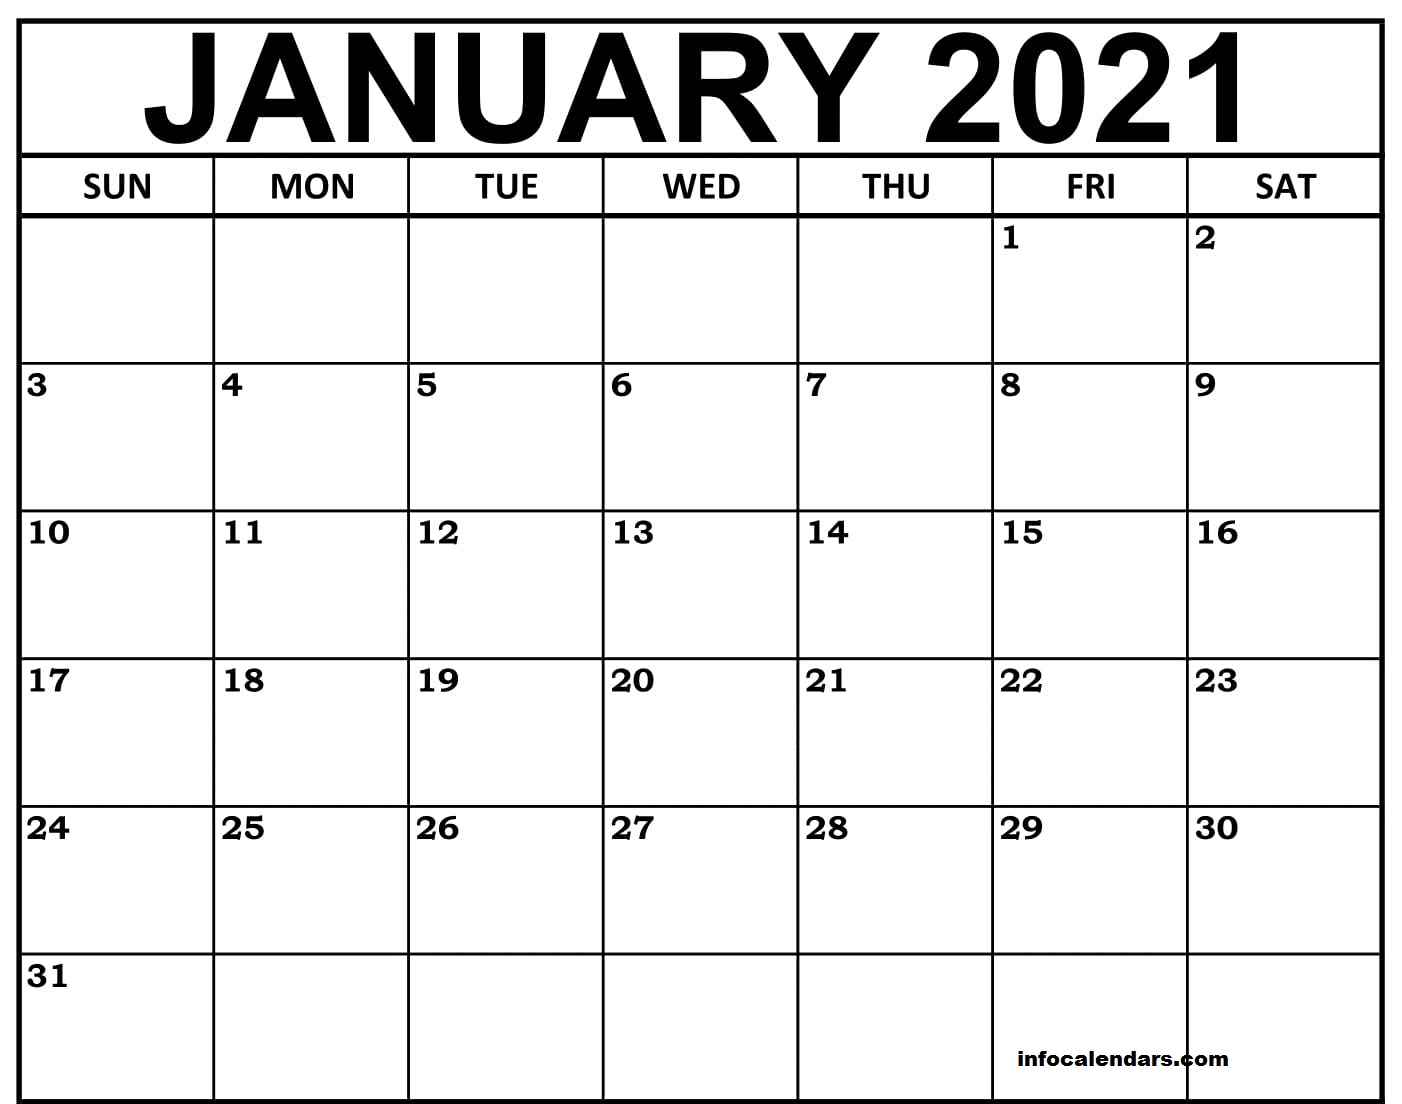 Free January 2021 Calendar PDF with Holidays